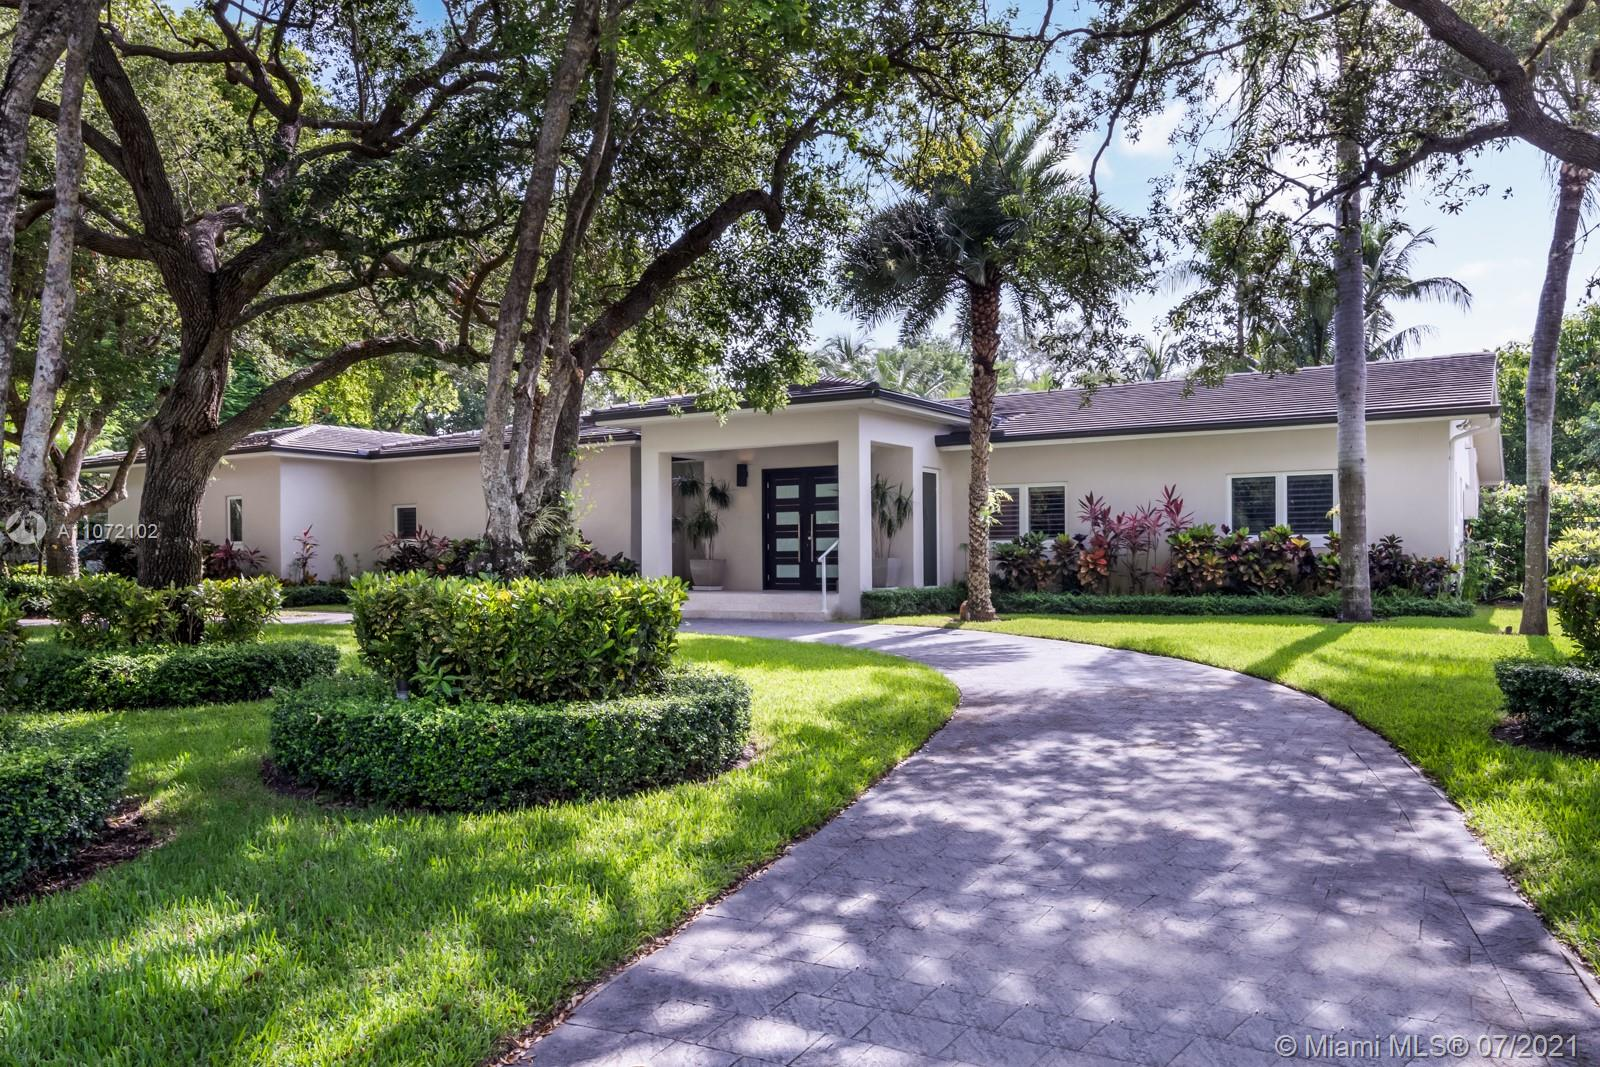 This beautiful home is located on a quiet Pinecrest street offering 4 beds, an office and 4.5 bath. The 4,798 Sf home was renovated in '15 and sits on almost an acre of lot. The property offers wood and marble floors, high ceiling, large en-suite bedrooms, Thermador appliances & gas range. The split floor plan provides for two master bedrooms w/private access to the backyard & pool. The property features a large elegant entrance, a separate living and family room as well as a large kitchen w/island and lots of natural light. The very private exterior of the property provides for a salt water pool, lush landscaping, plenty of green space, 16 types of fruit trees and a coverage terrace. Finally this home comes with 2-car garage and is located in the Pinecrest school district.